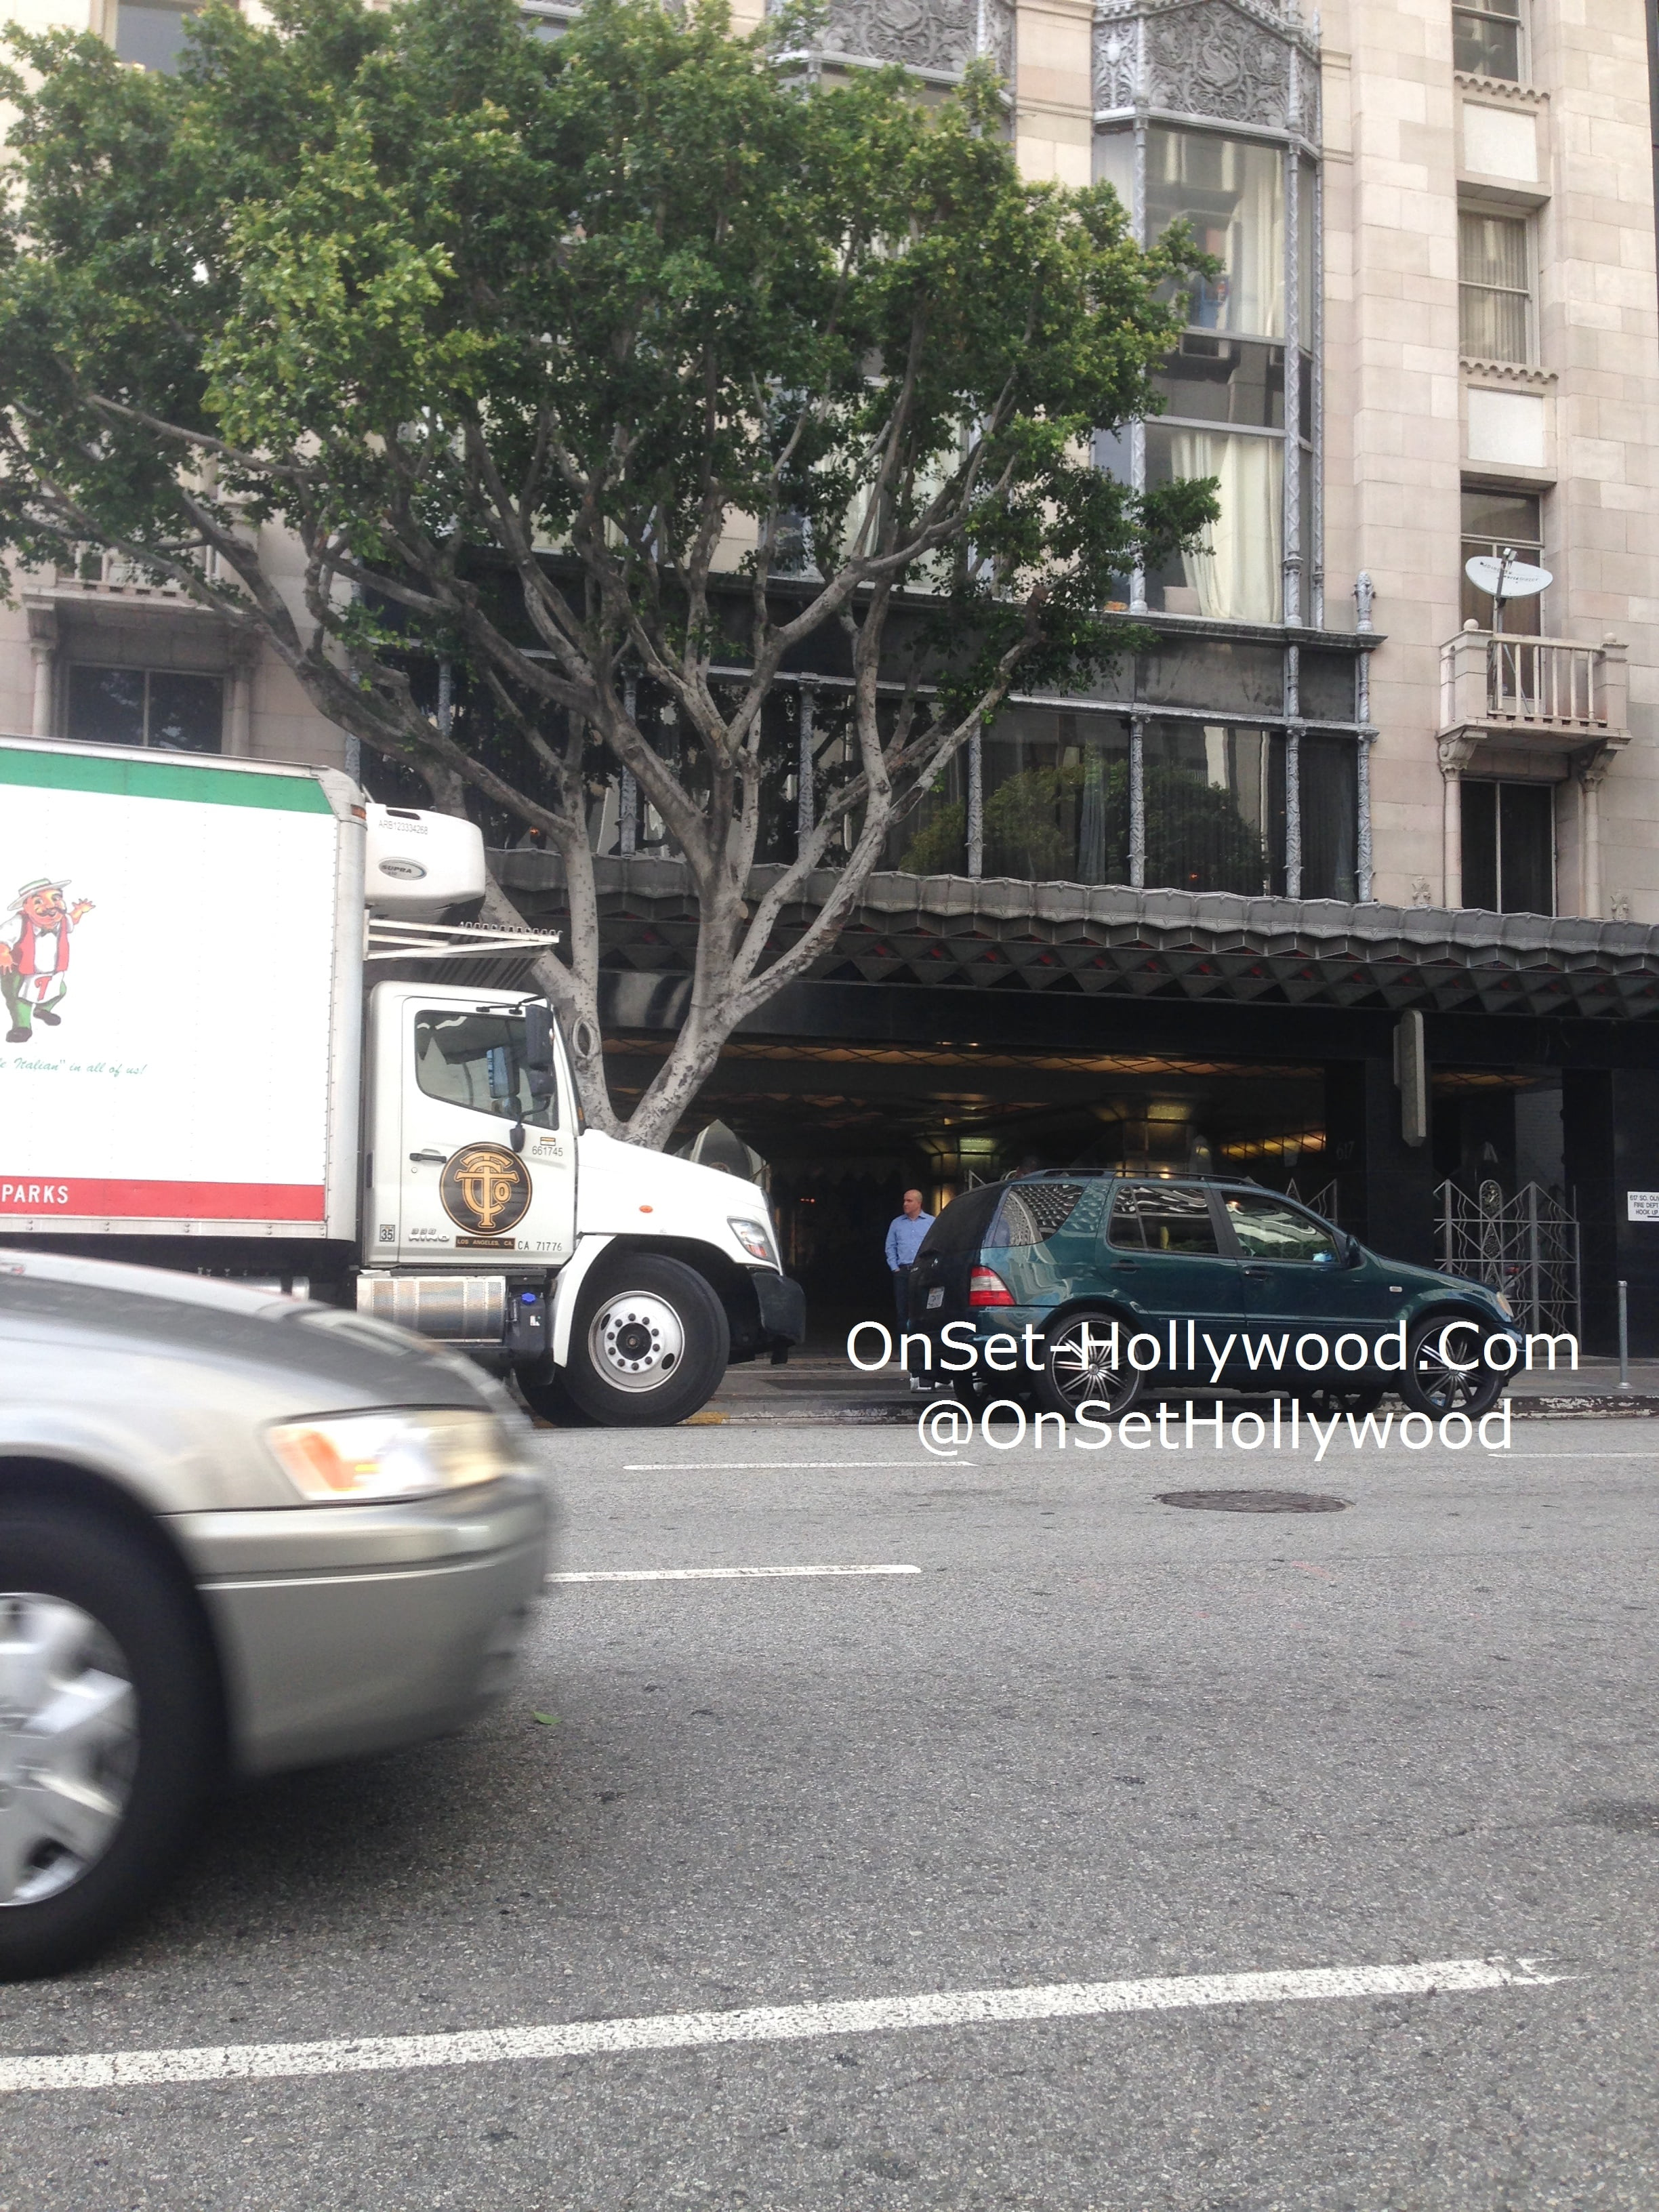 american-horror-story-hotel-filming-locations-pic2